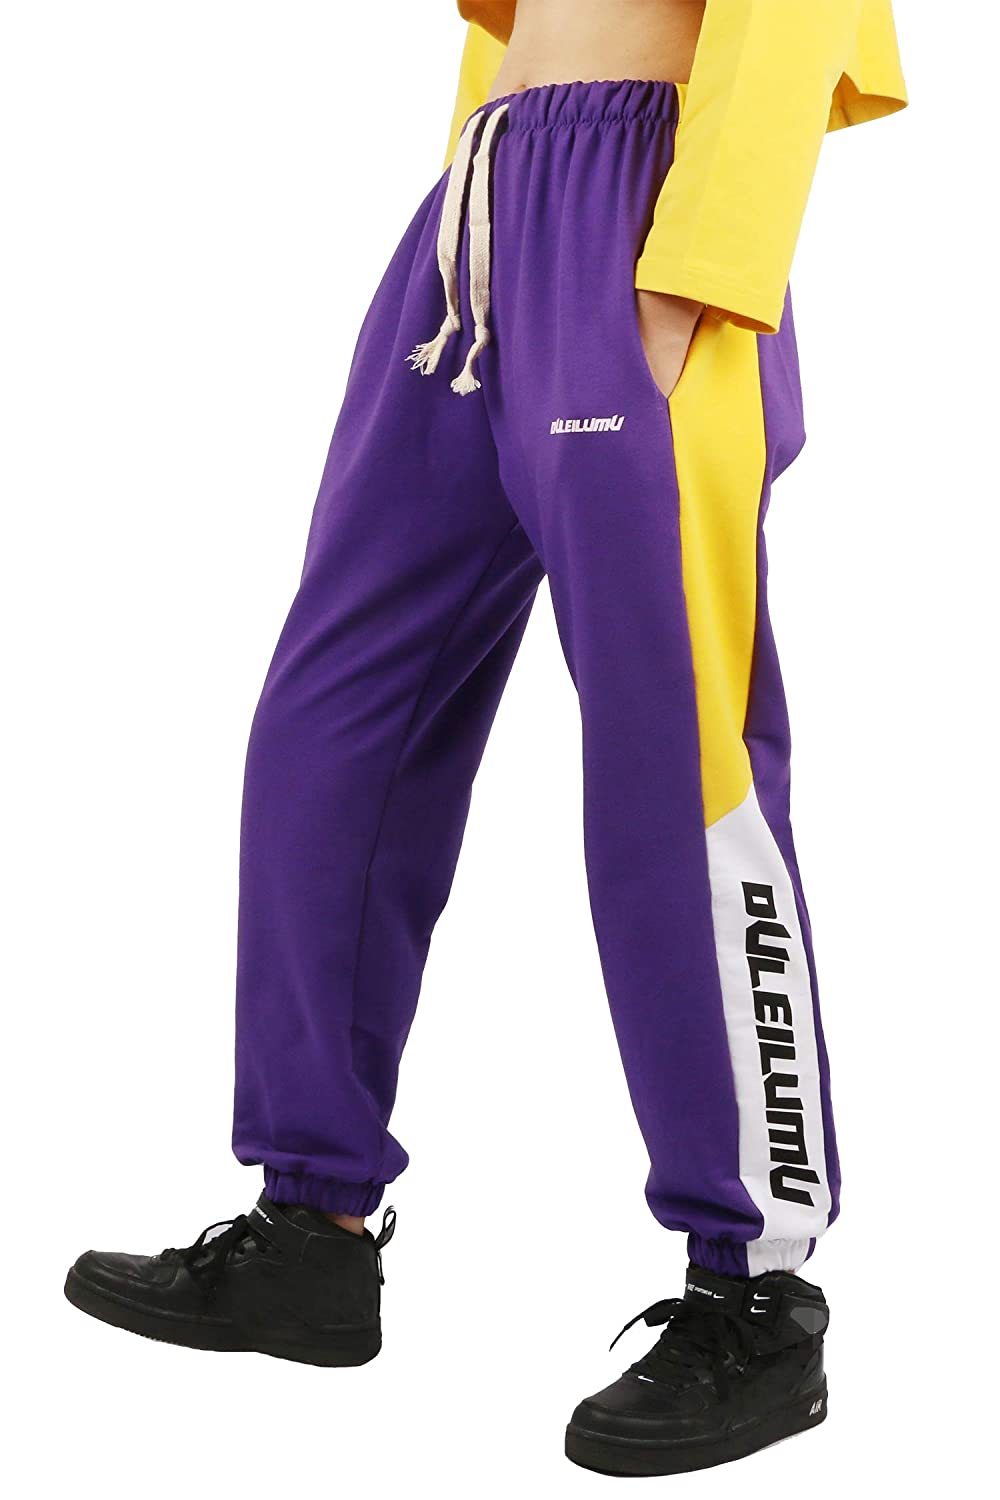 Rolanko Girls Jogger Trousers Drawstring Athletic Kids Sweatpants with Pocket for Boys Hip Hop Streetwear Trousers